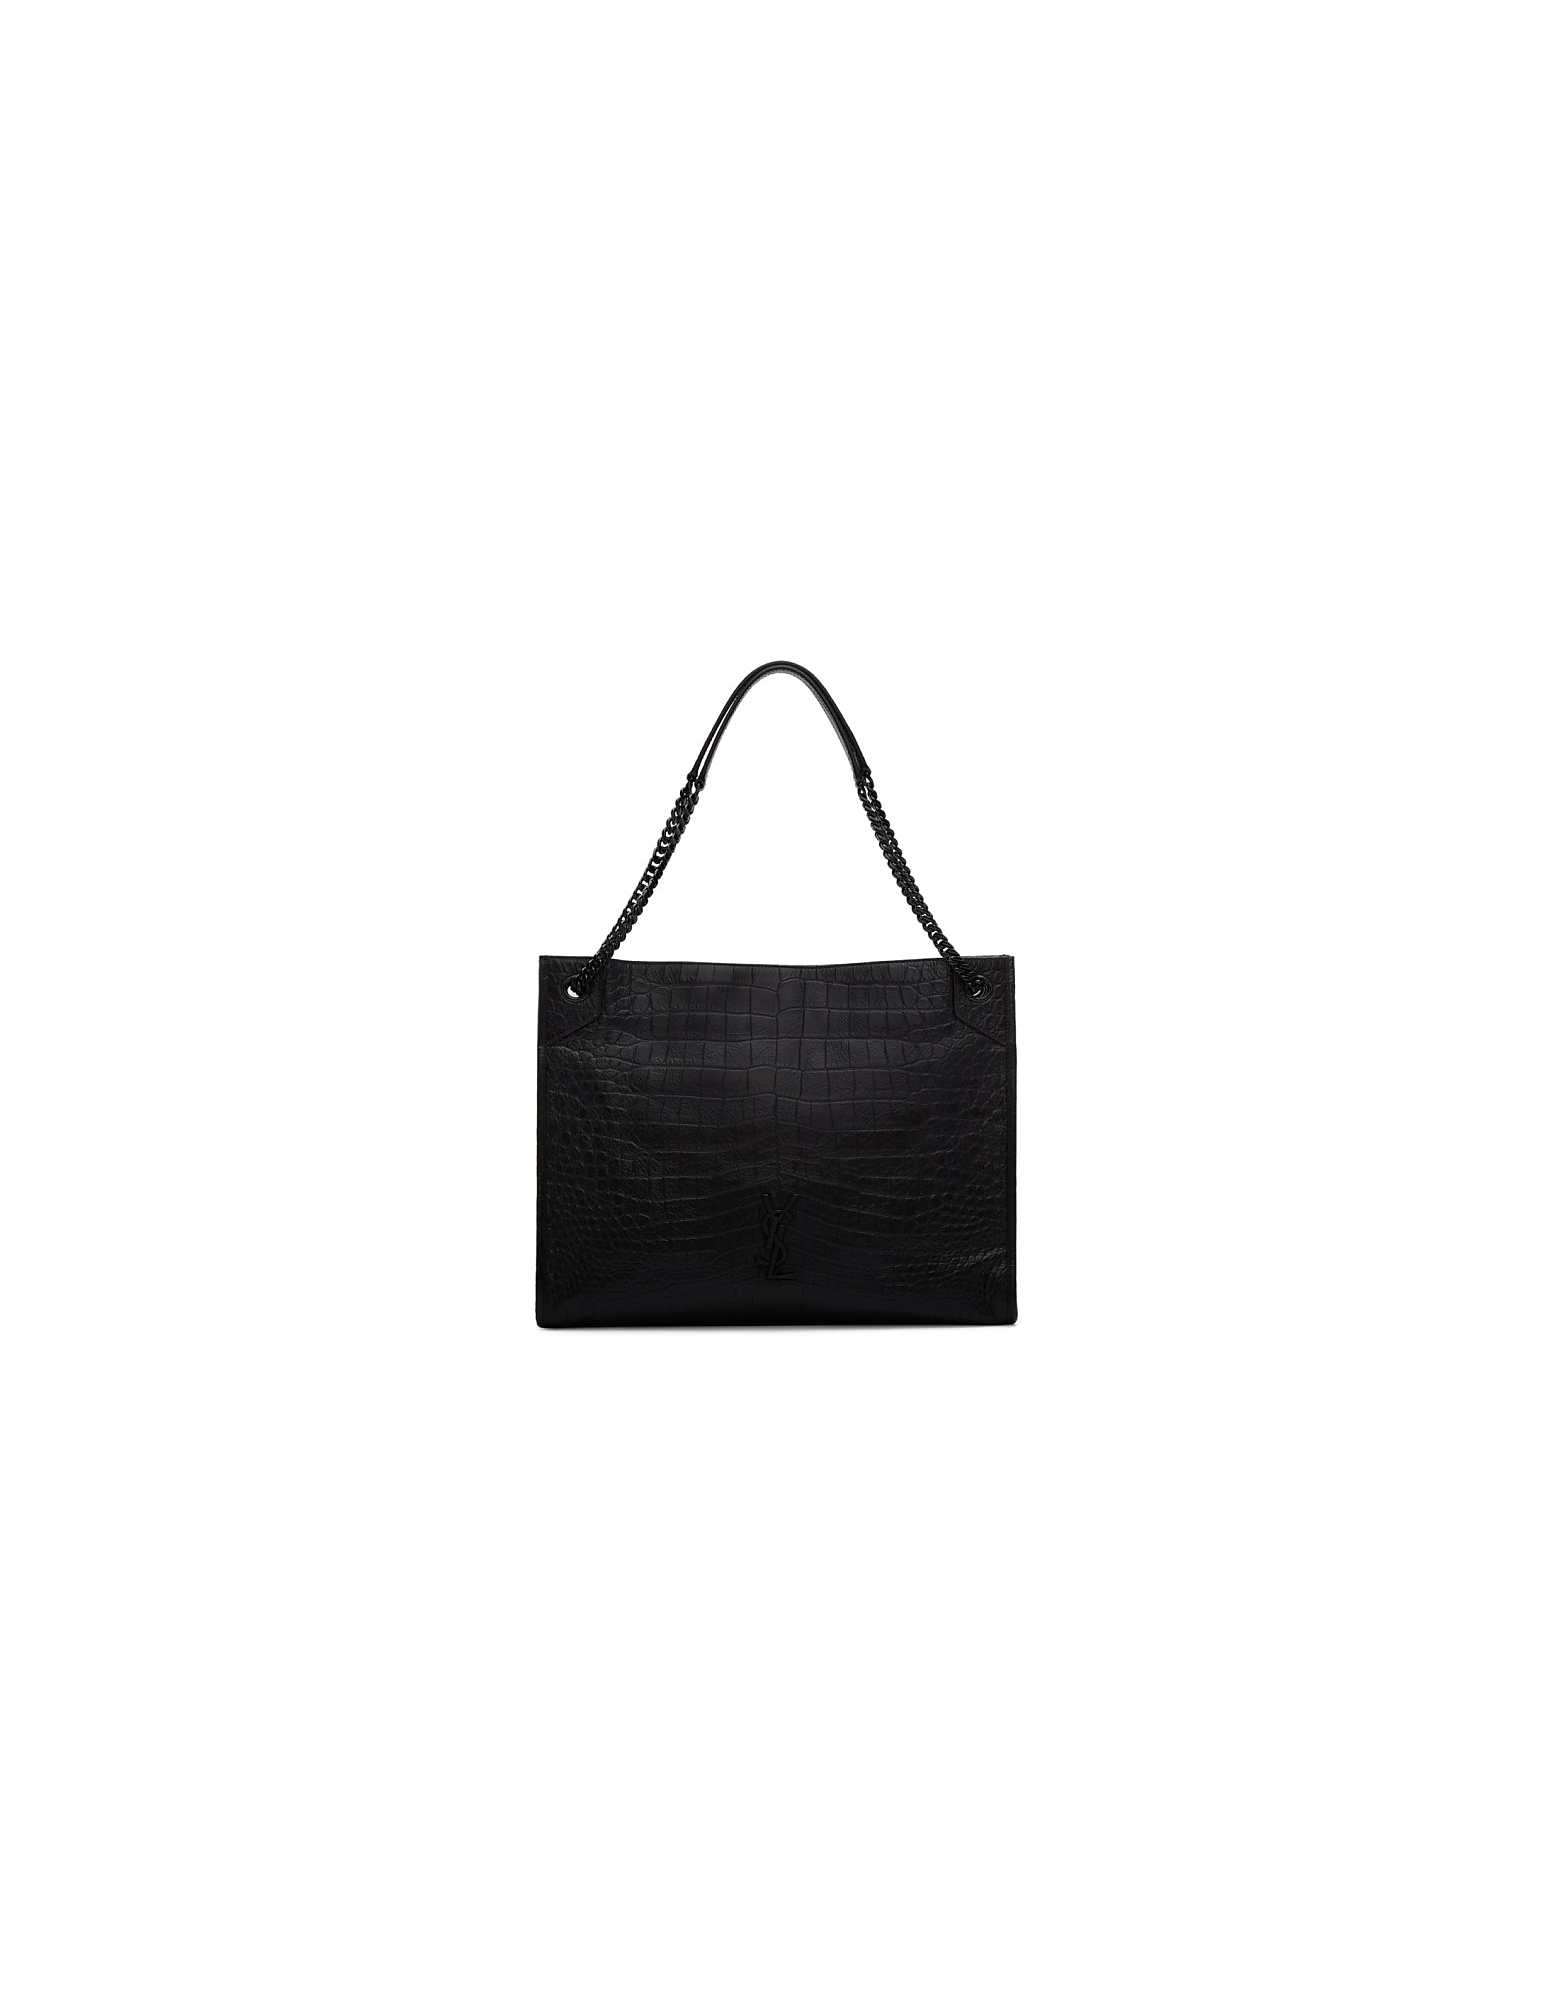 Saint Laurent Designer Handbags, Black Croc Large Niki Shopping Tote